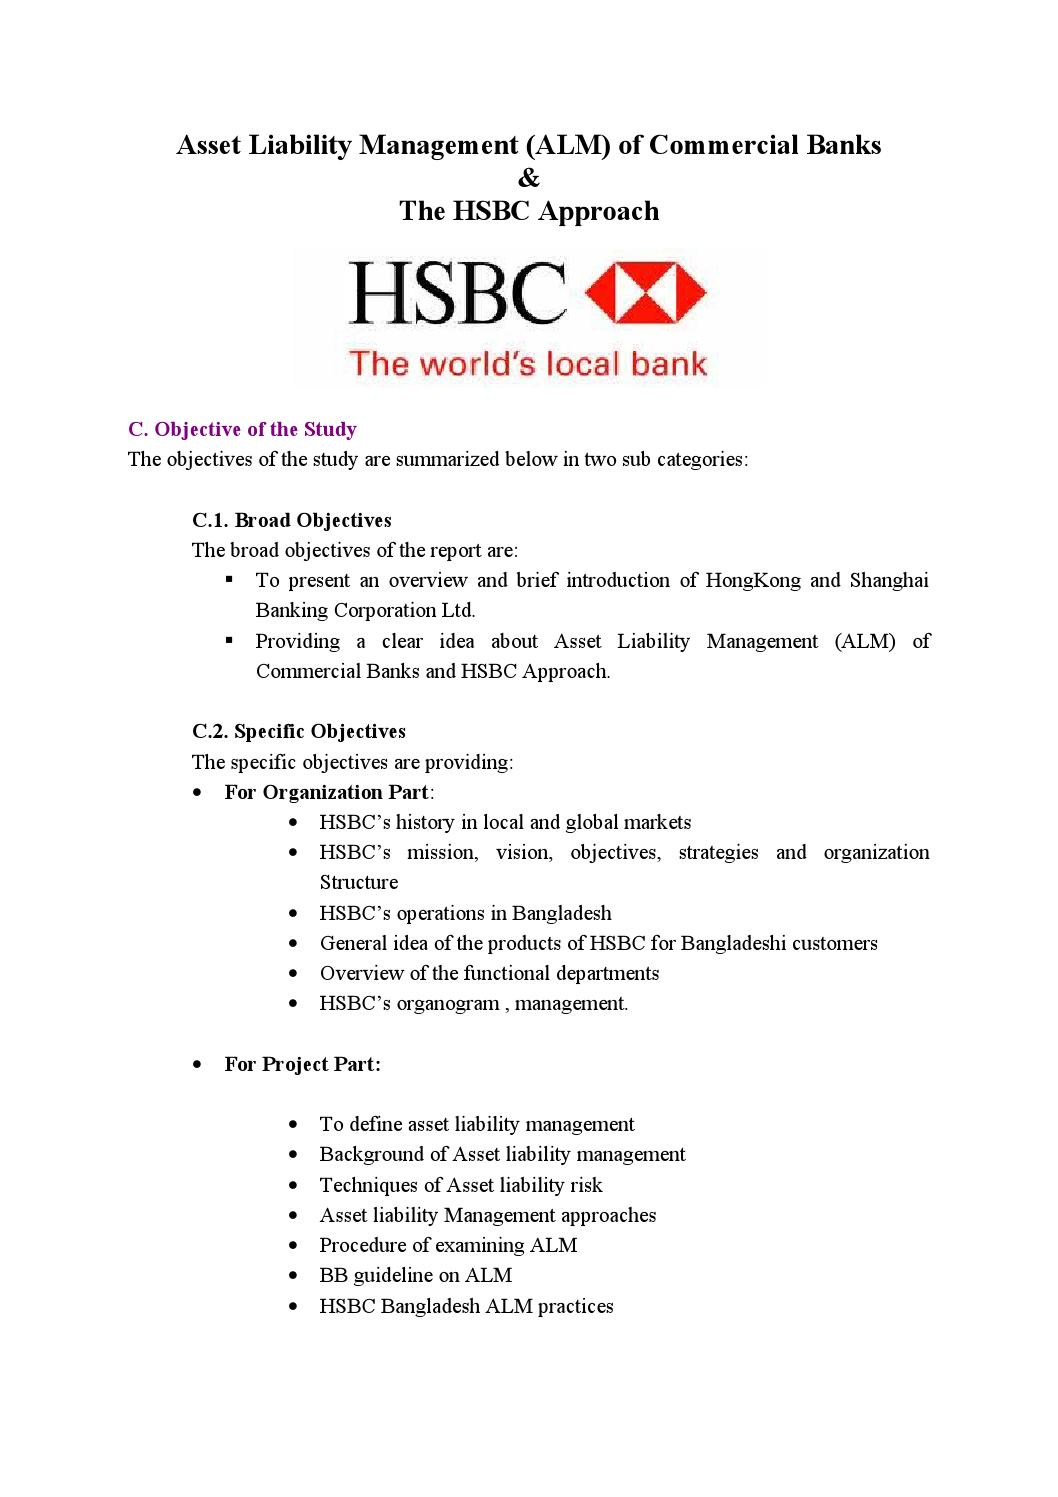 mission vision and objectives of hsbc bank Hsbc holdings vision: we aspire to be one of the world's great specialist banking groups, driven by commitment to our core philosophies and values mission: t.